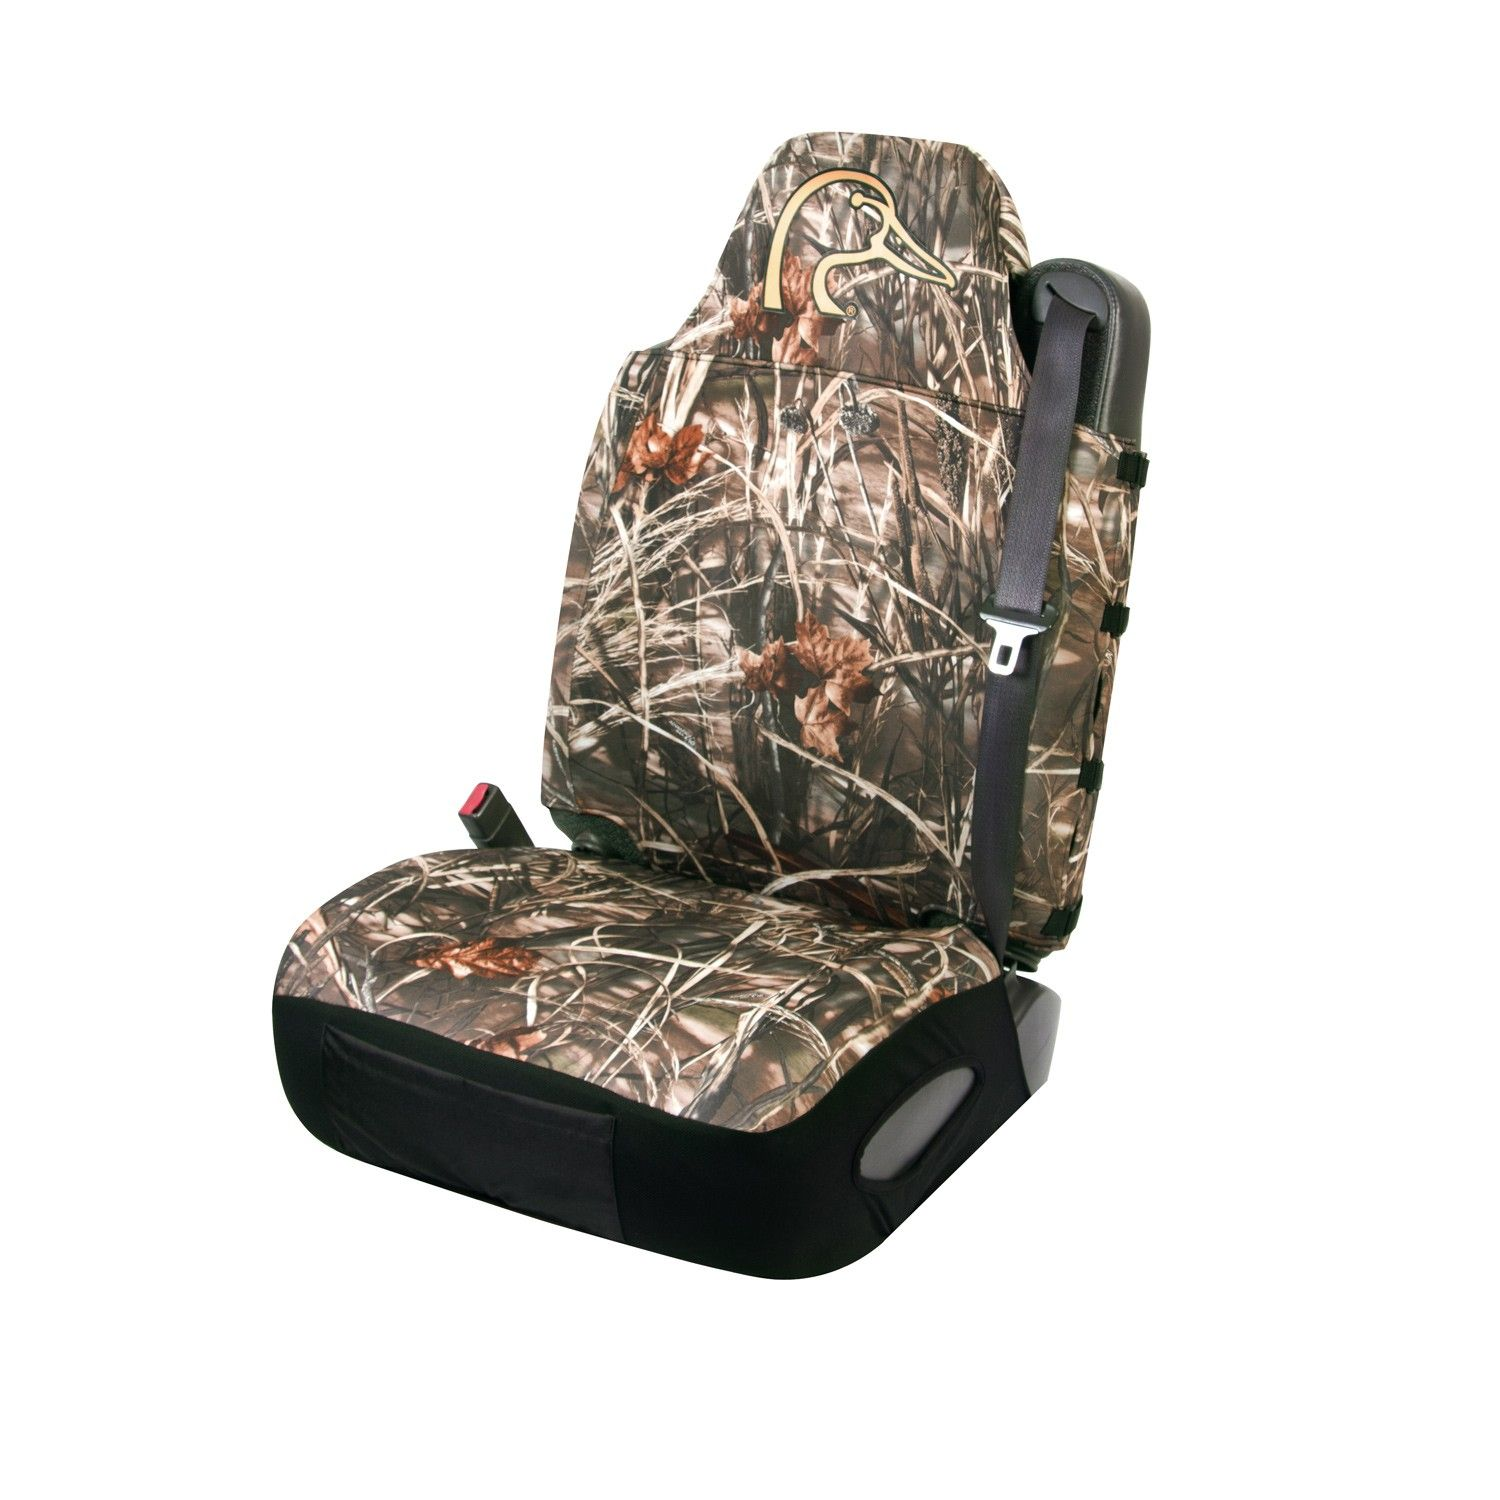 Neoprene Ducks Unlimited Camo Seat Cover